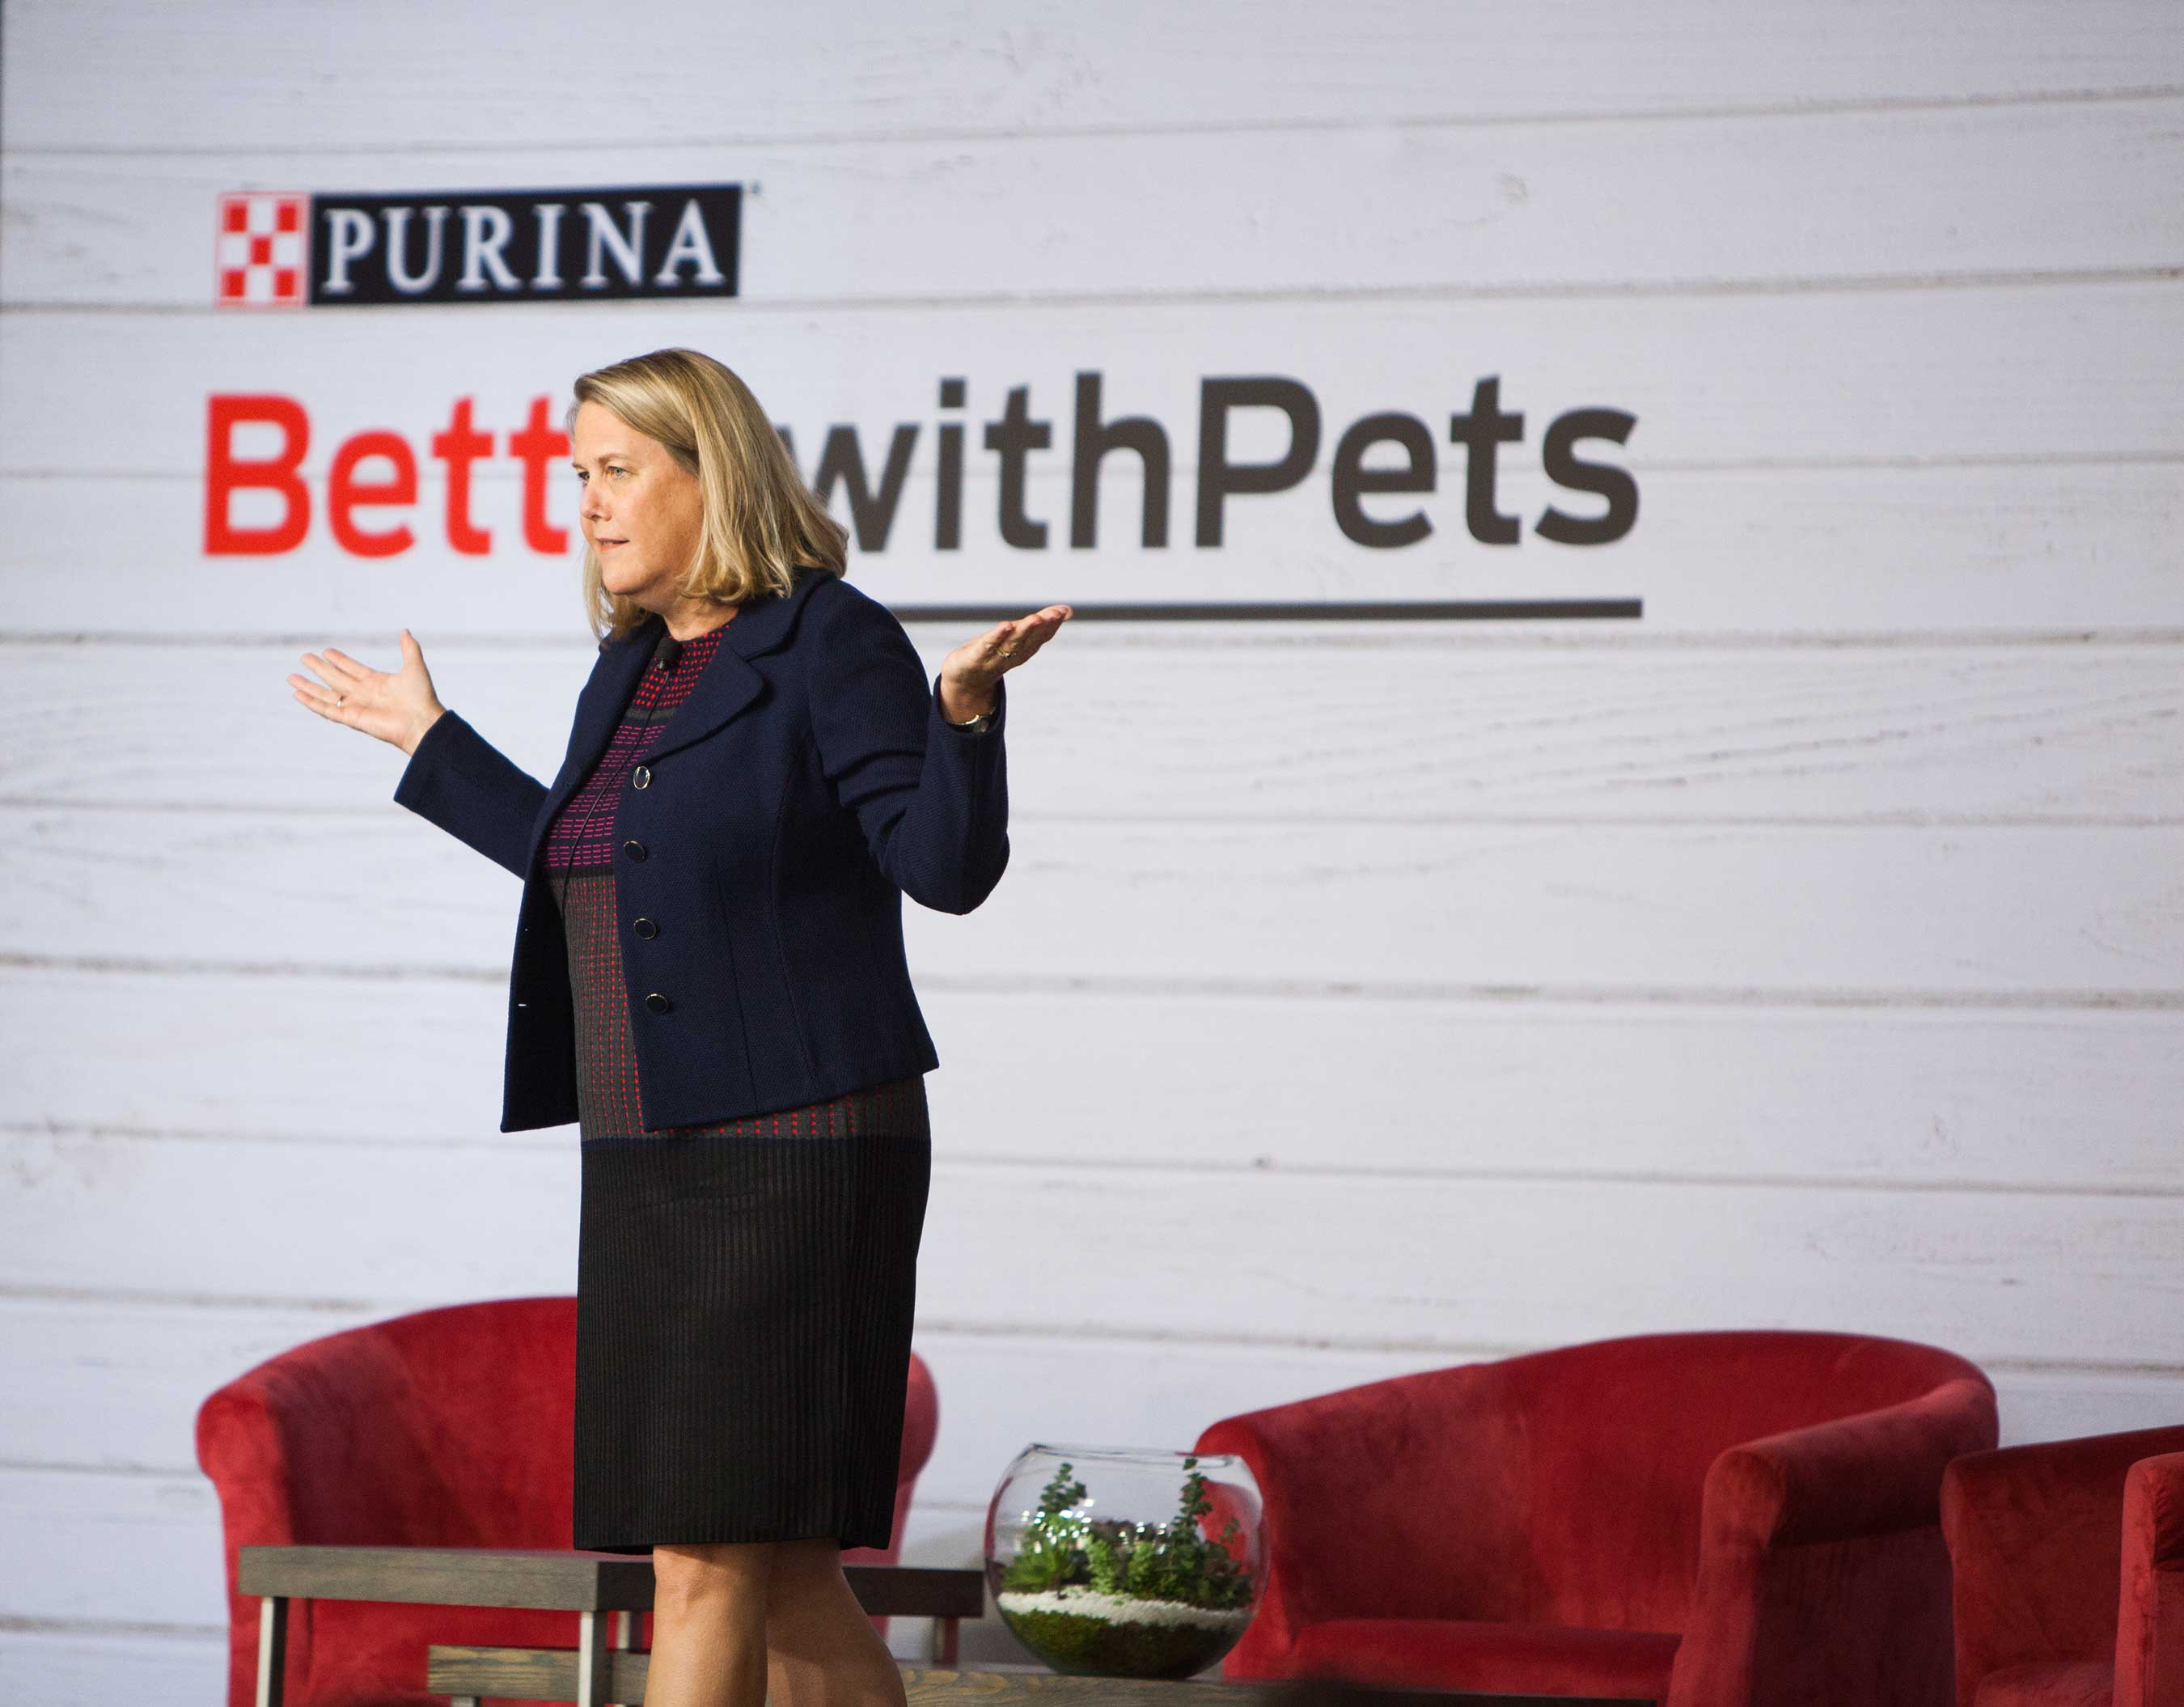 During Purina's Better with Pets Summit, Nina Leigh Krueger, President of Nestlé Purina U.S., discussed how pets and people can live bigger, happier lives together.